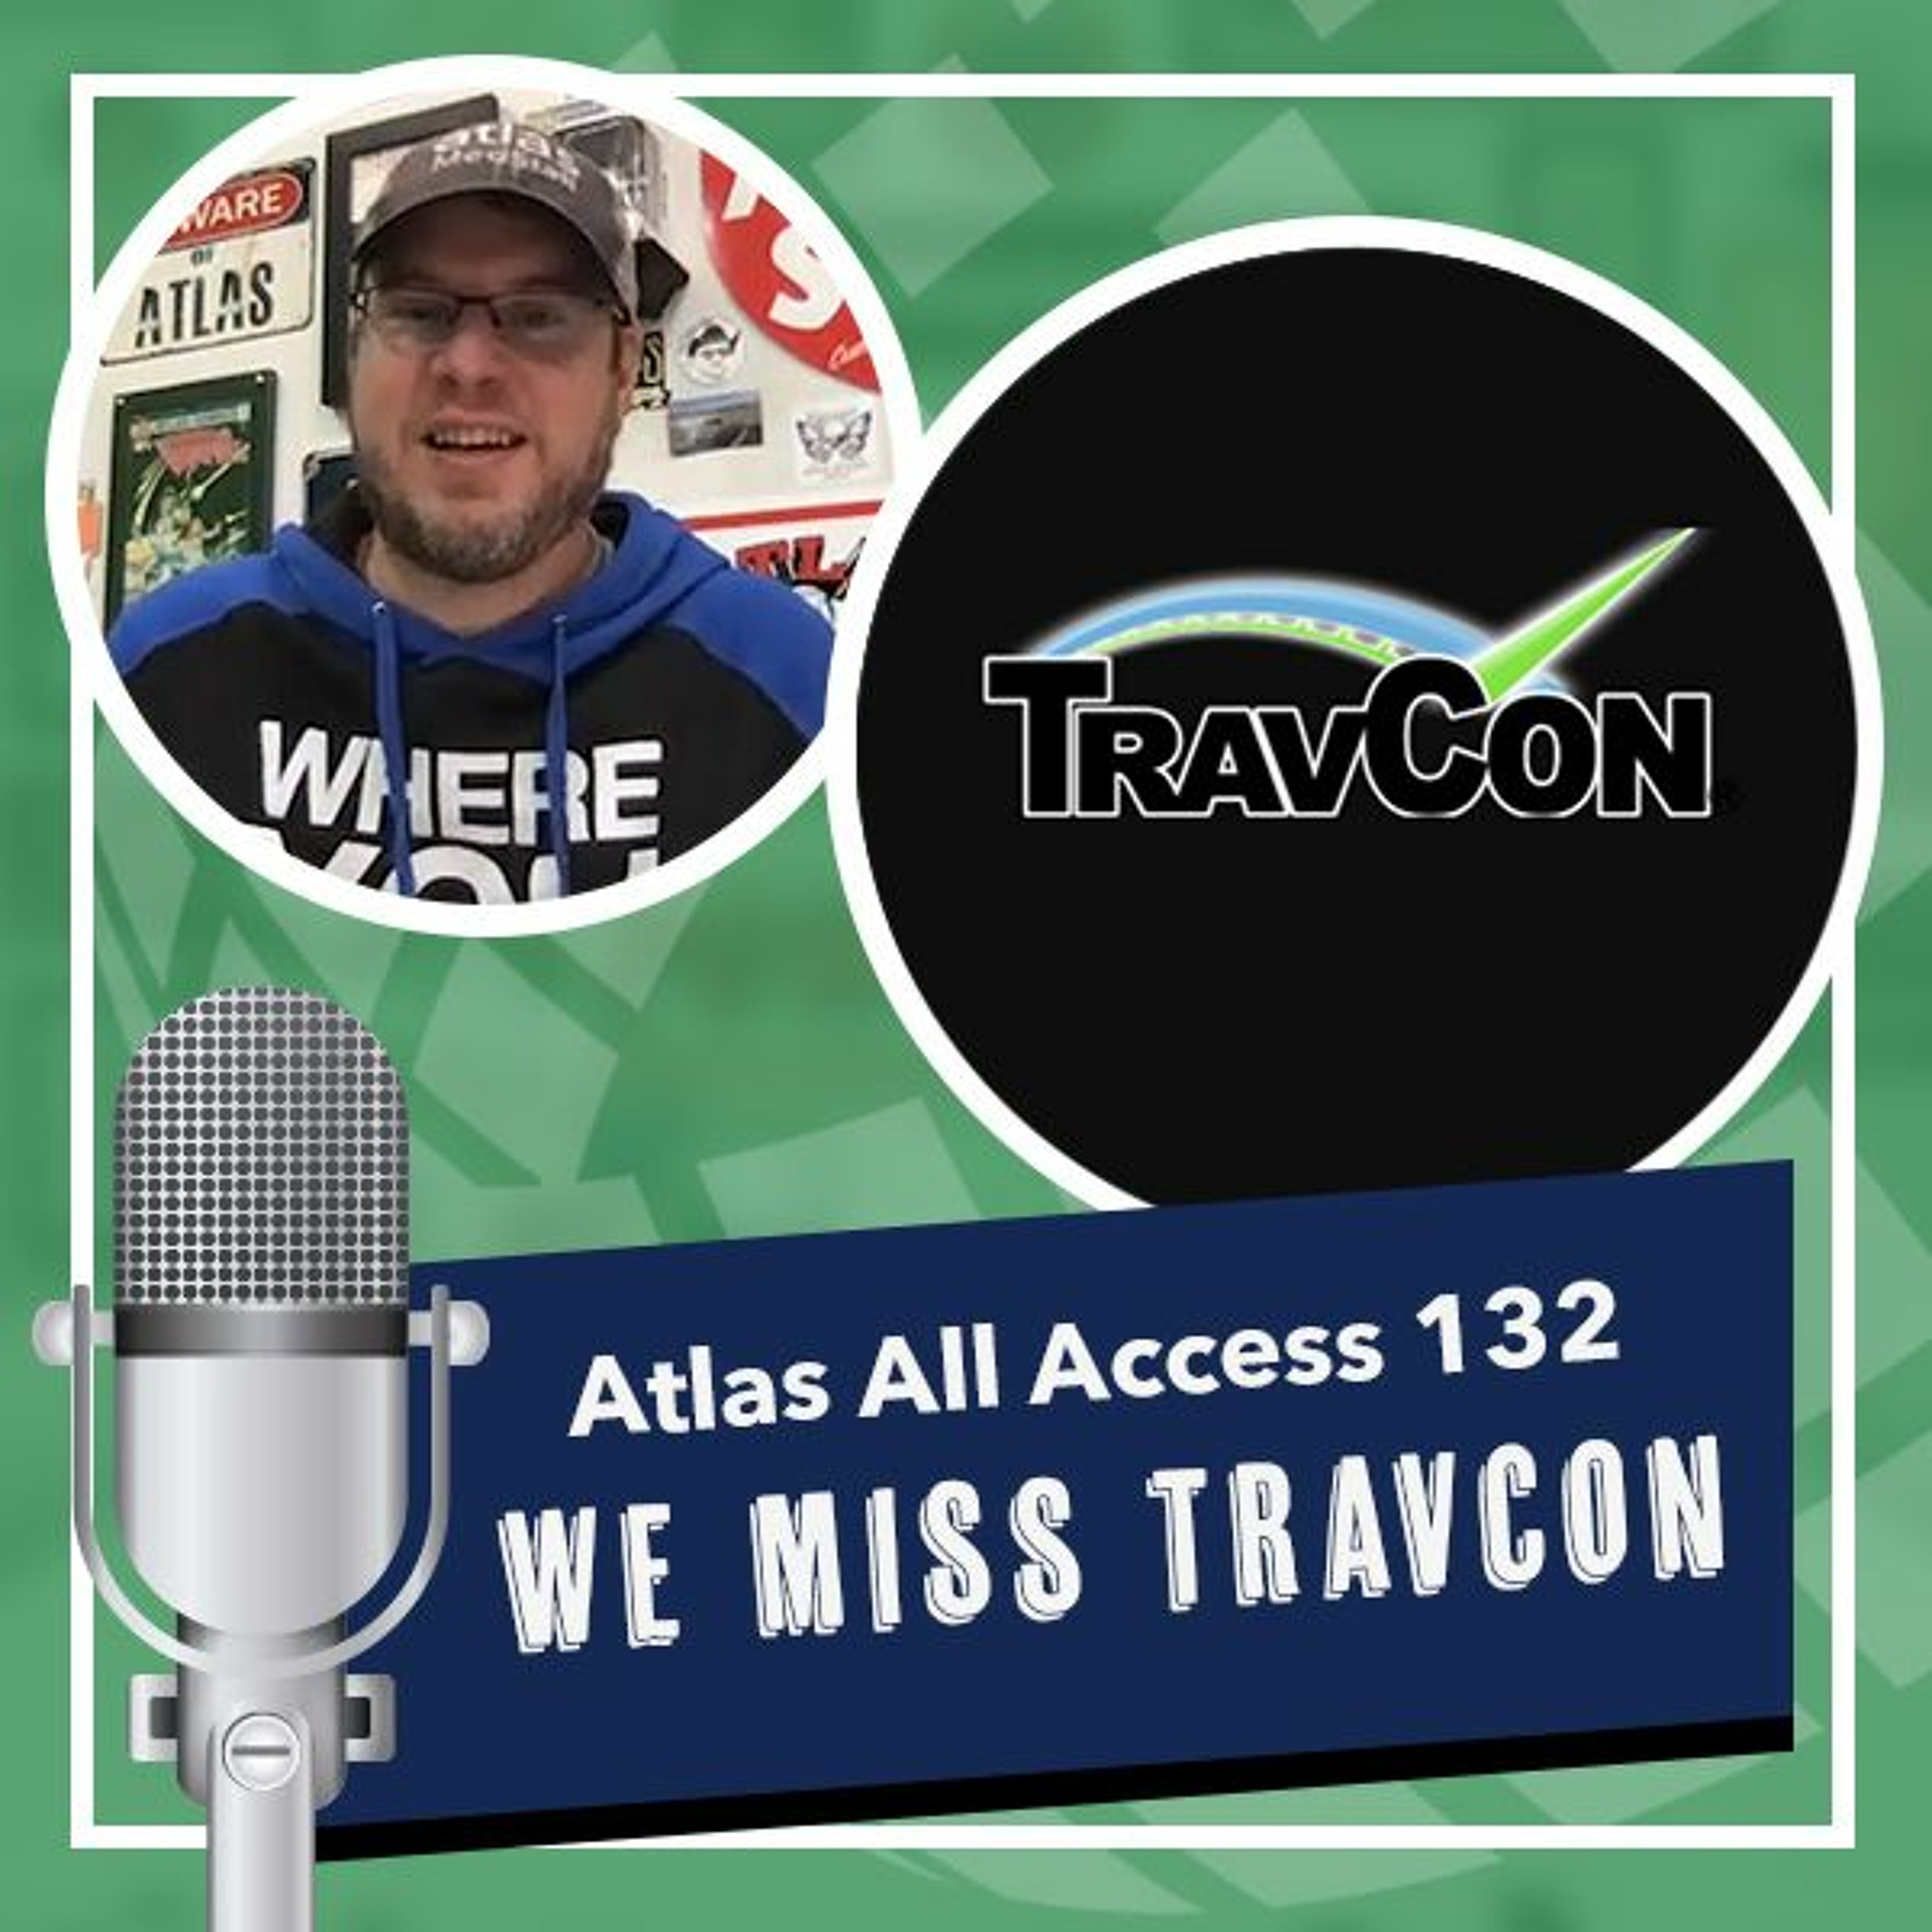 The TravCon that wasn't, and the TravCon that will be - Atlas All Access 132